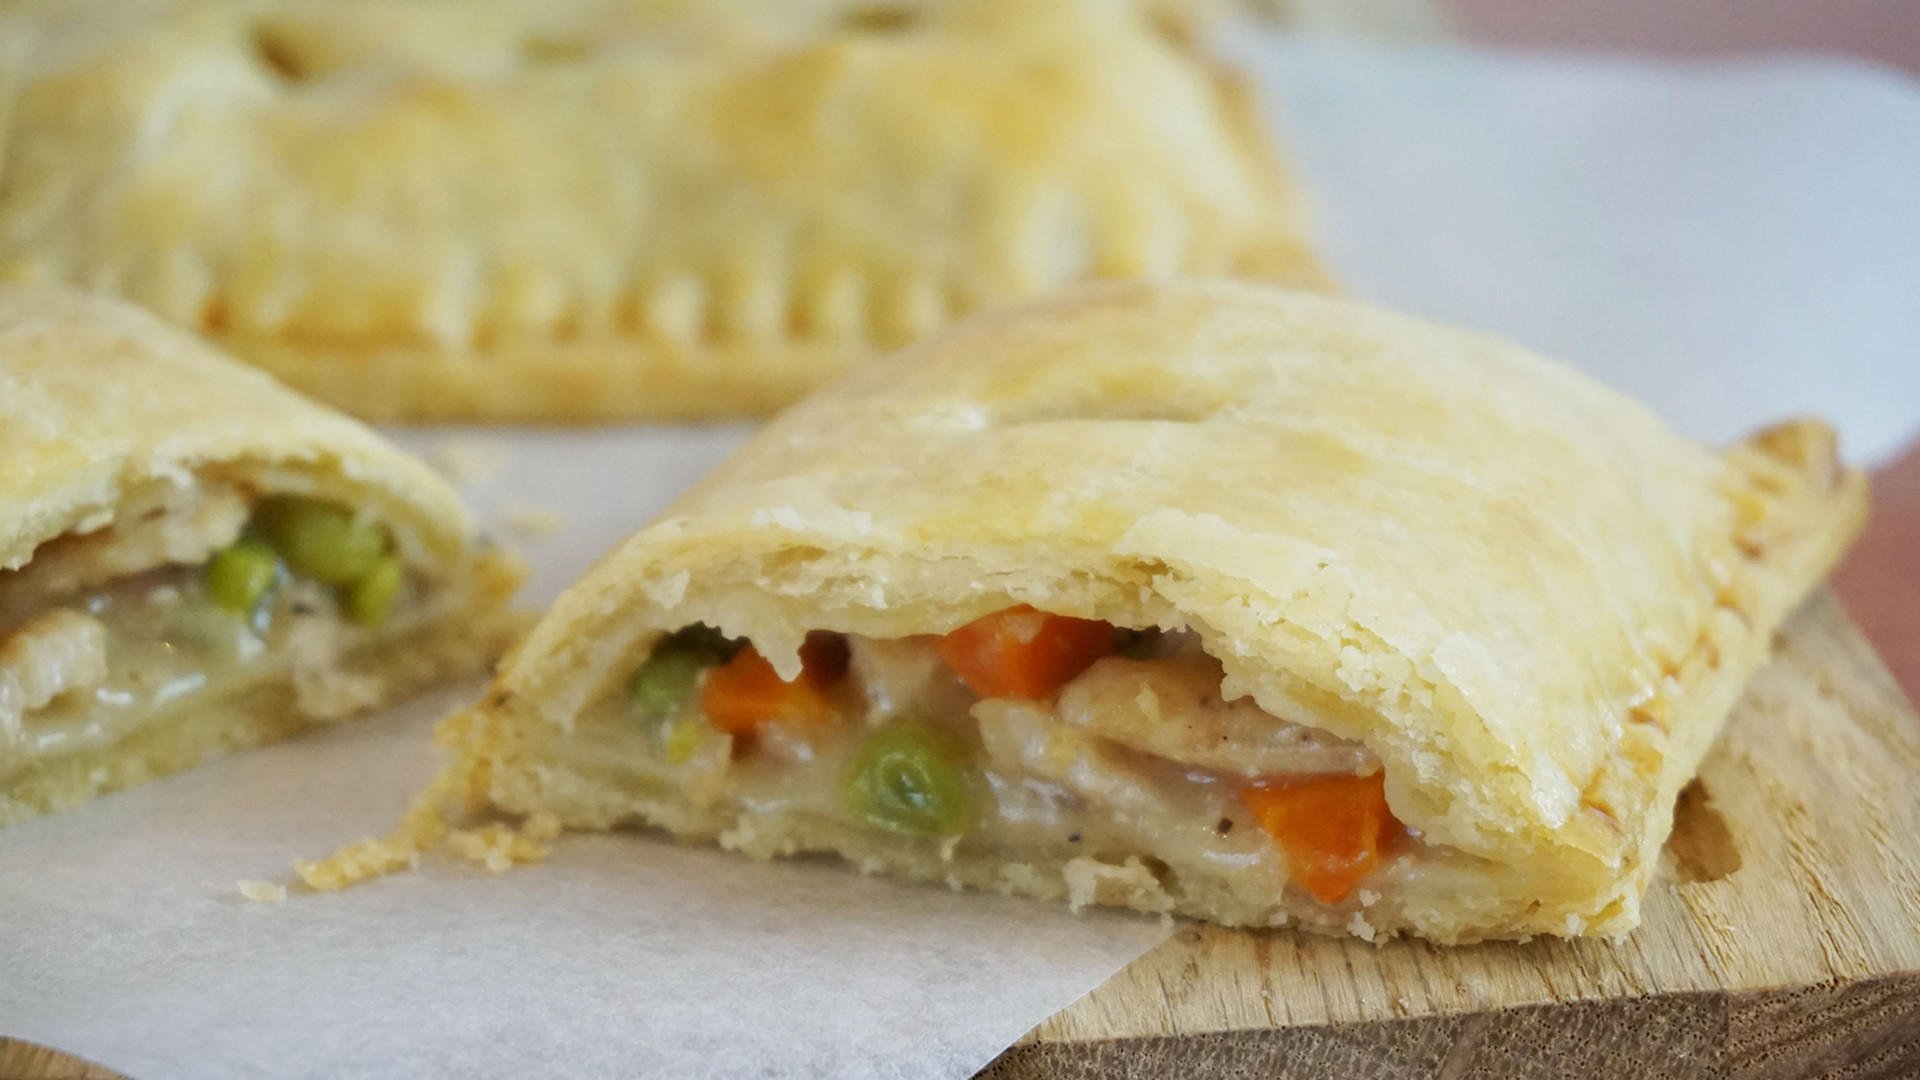 Chicken-Pot-Pie-Pockets-OC-1920x1080-wallpaper-wpc9003479